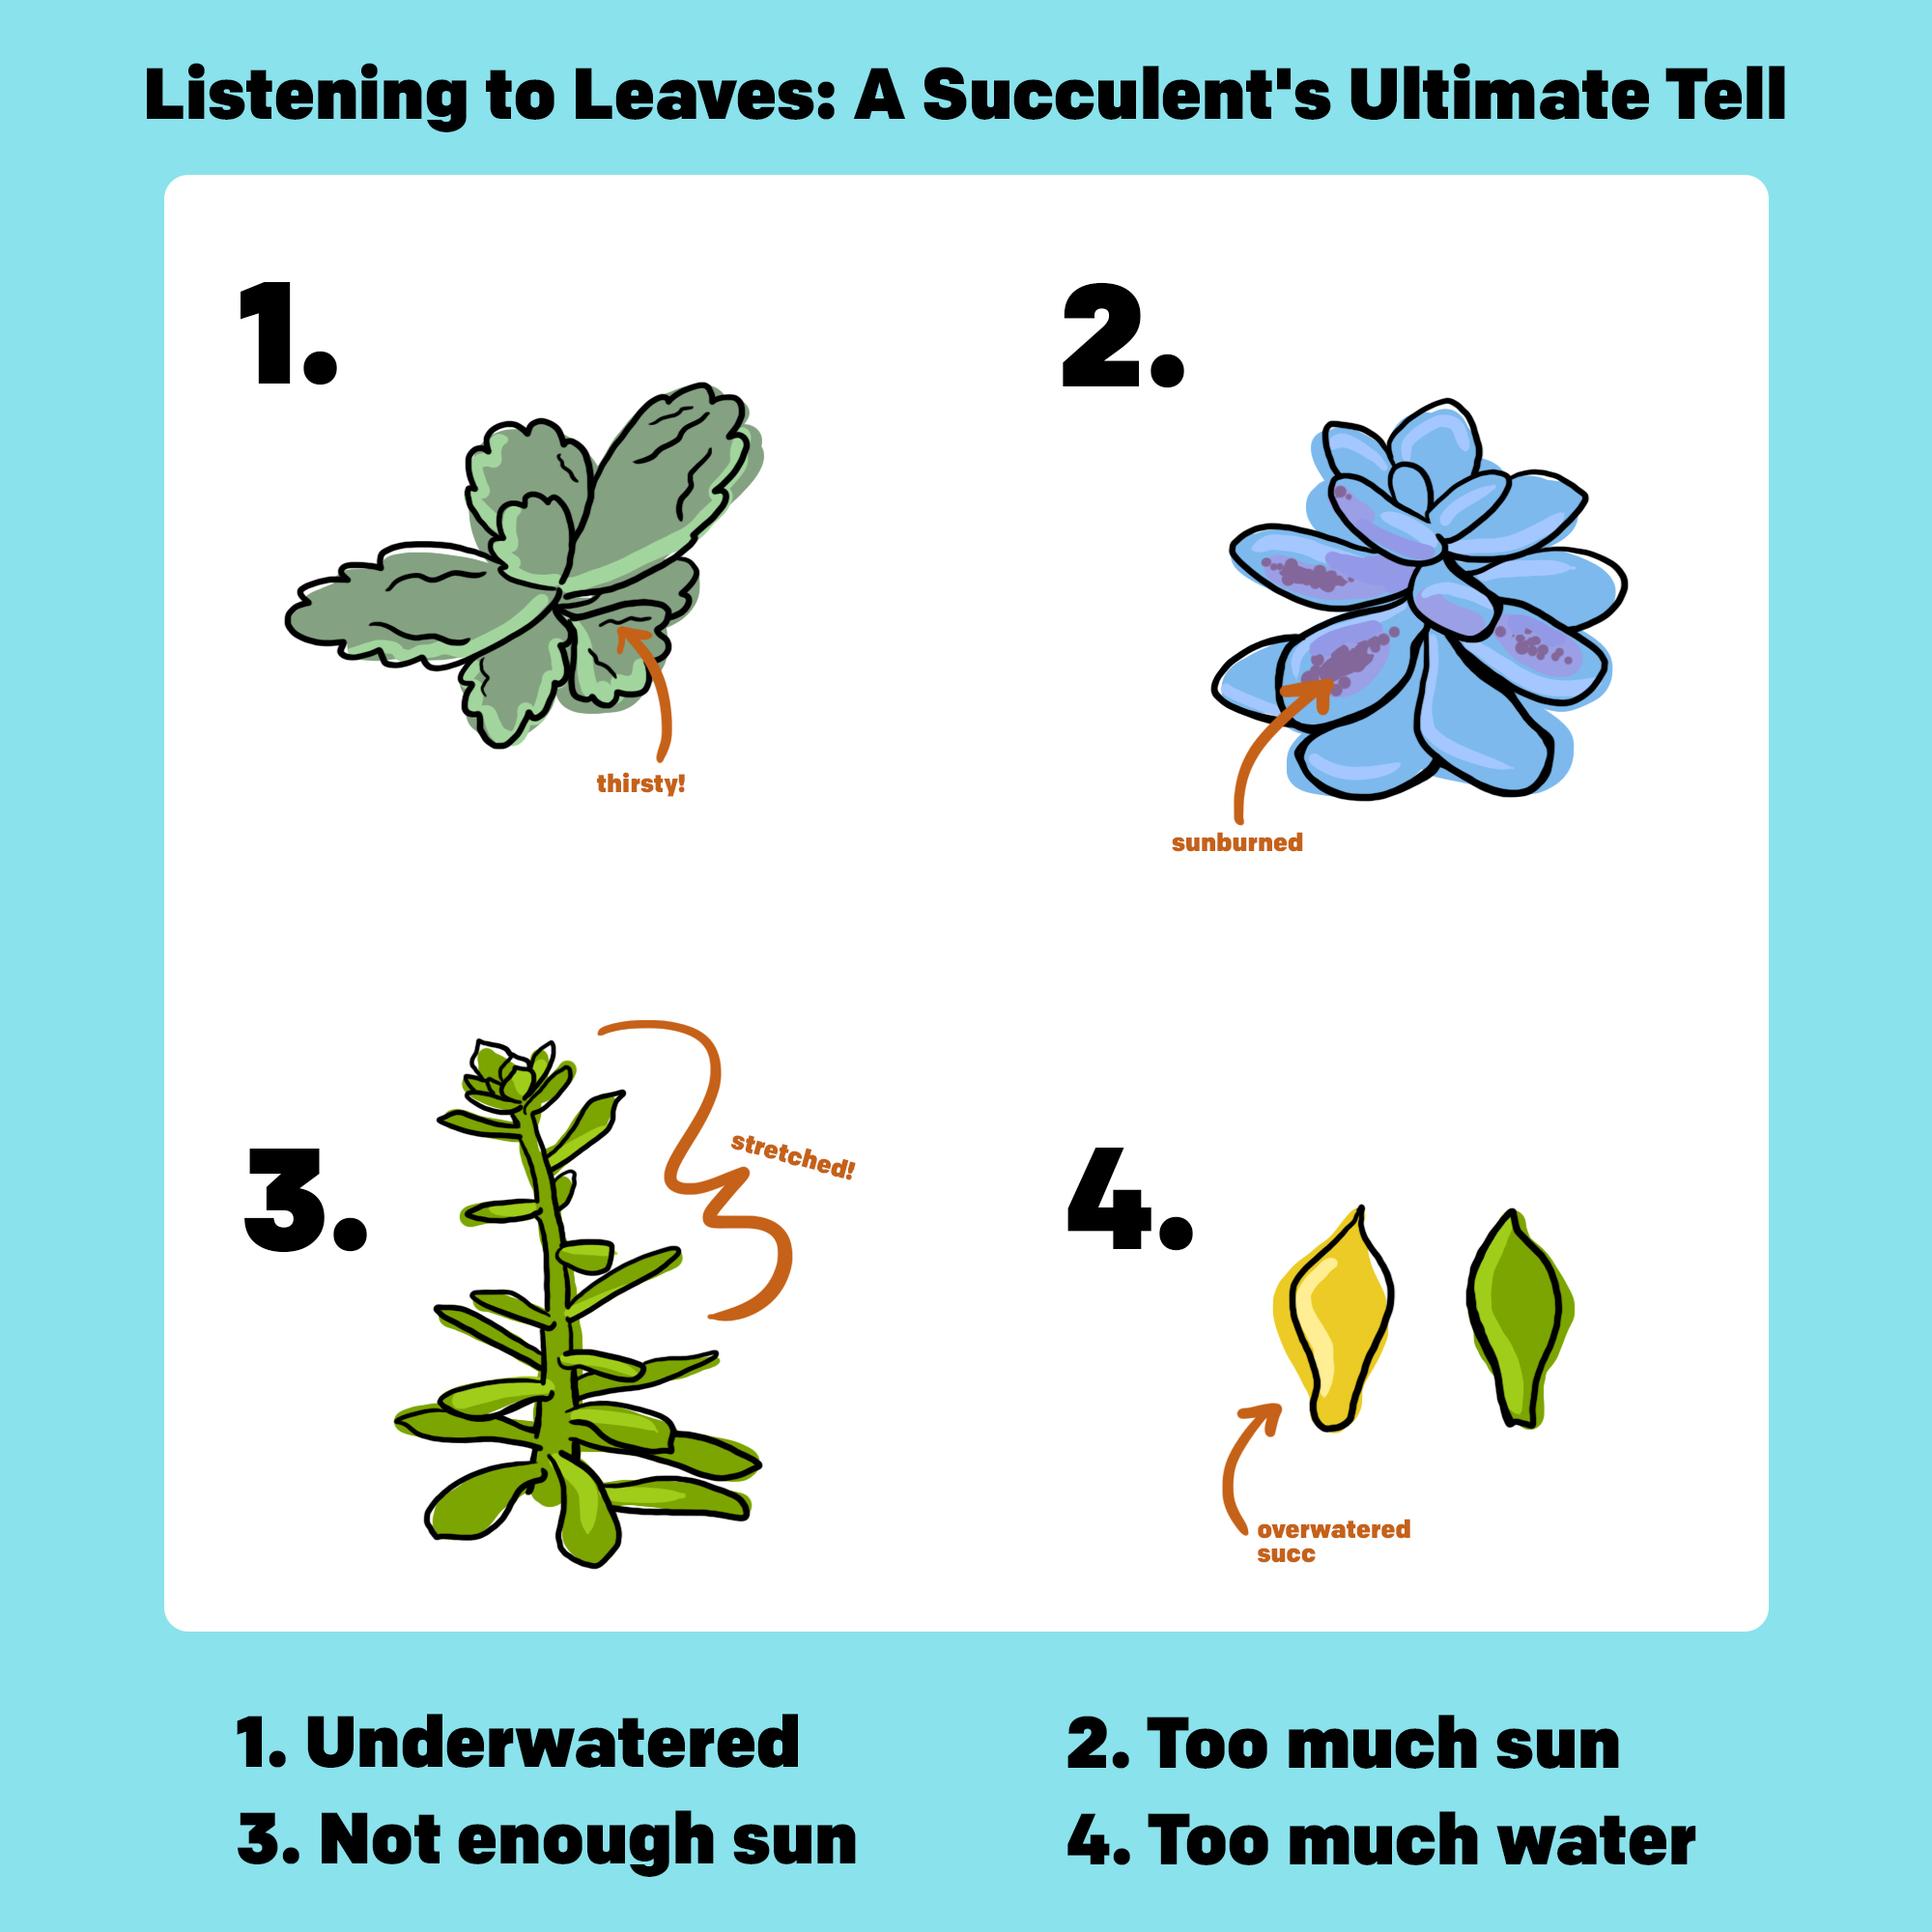 Listening to Leaves: A Succulent's Ultimate Tell